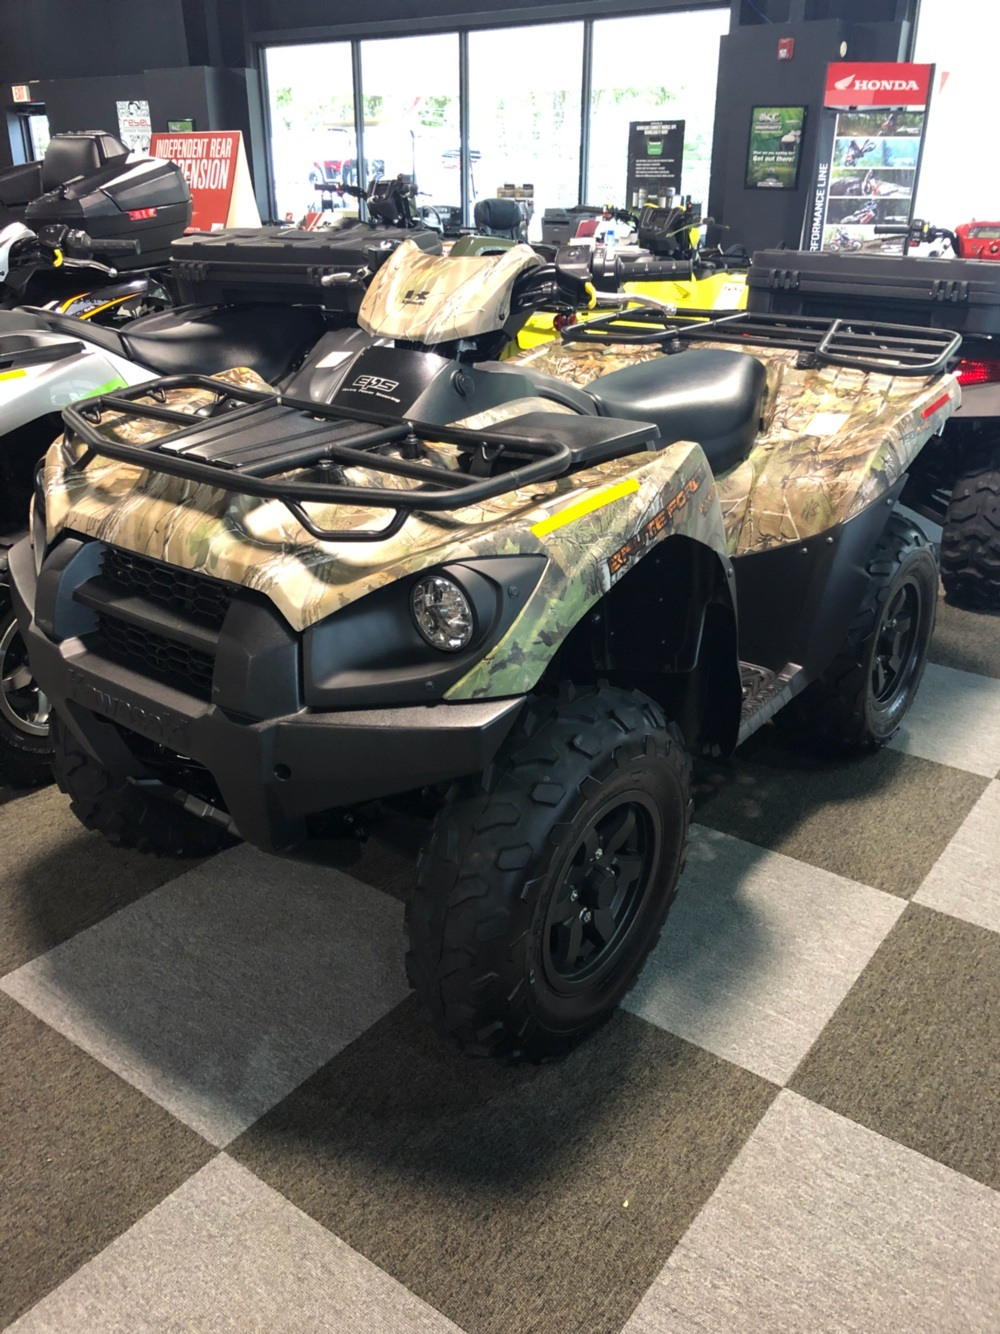 2019 Kawasaki Brute Force 750 4x4i EPS Camo in Brunswick, Georgia - Photo 1